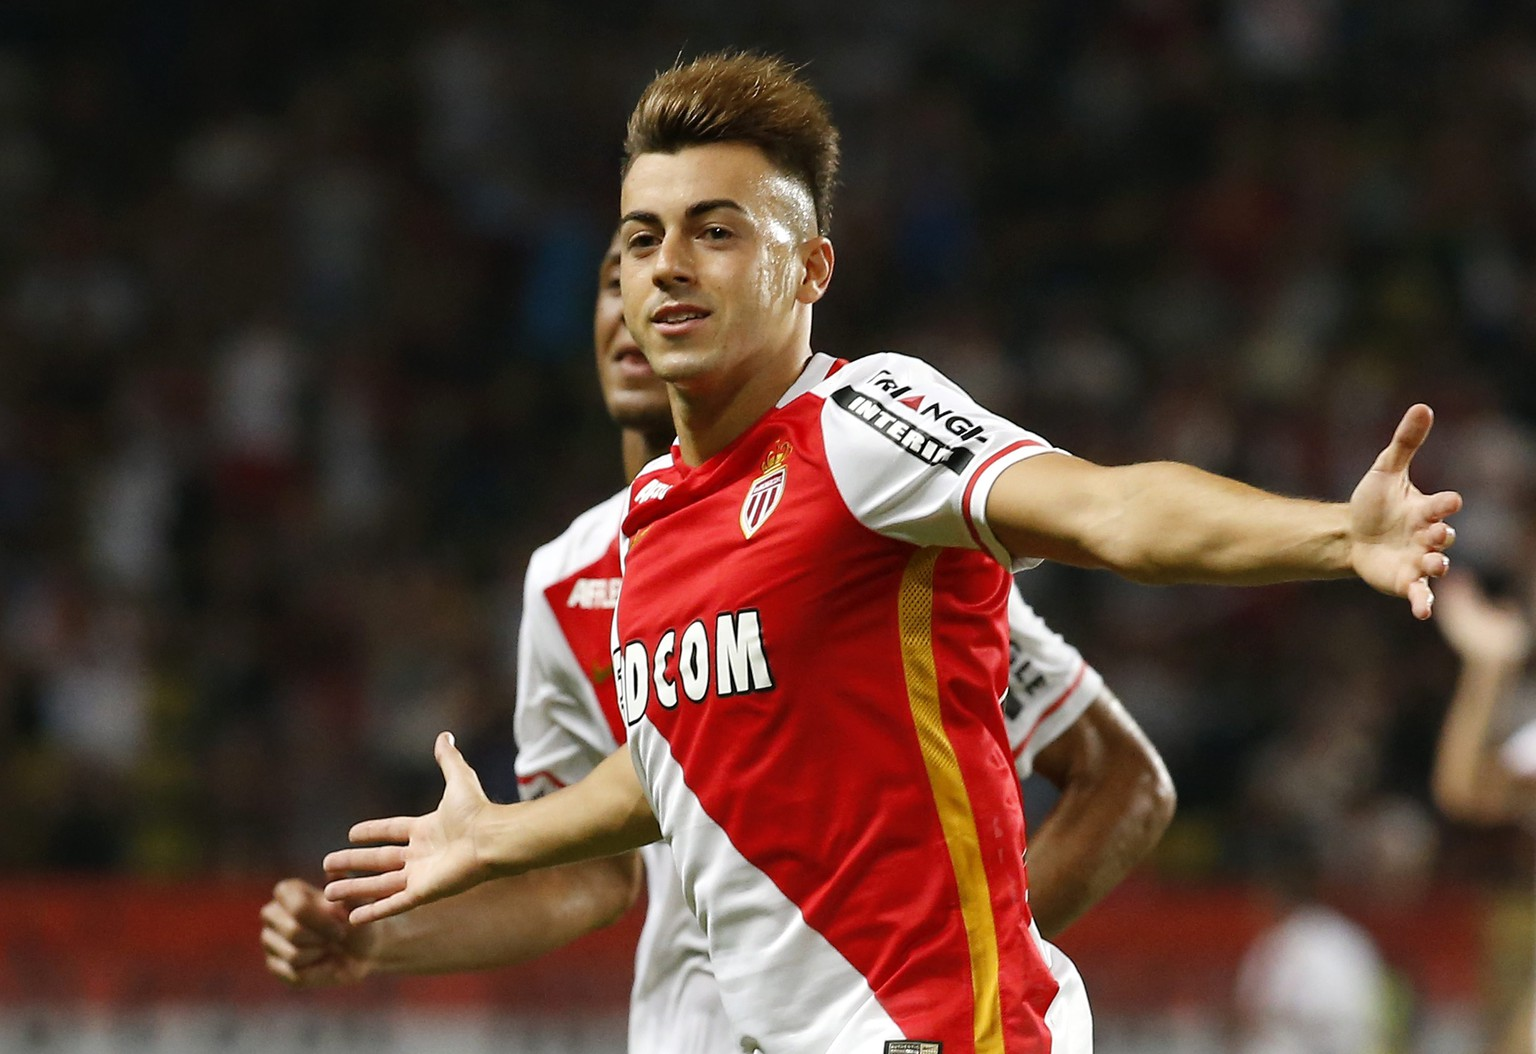 epa04872202 Stephan El Shaarawy of AS Monaco celebrates after scoring a goal against Young Boys Bern during the UEFA Champions League third qualifying round, first leg soccer match between AS Monaco and BSC Young Boys Bern, at Stade Louis II, in Monaco, 04 August 2015.  EPA/SEBASTIEN NOGIER